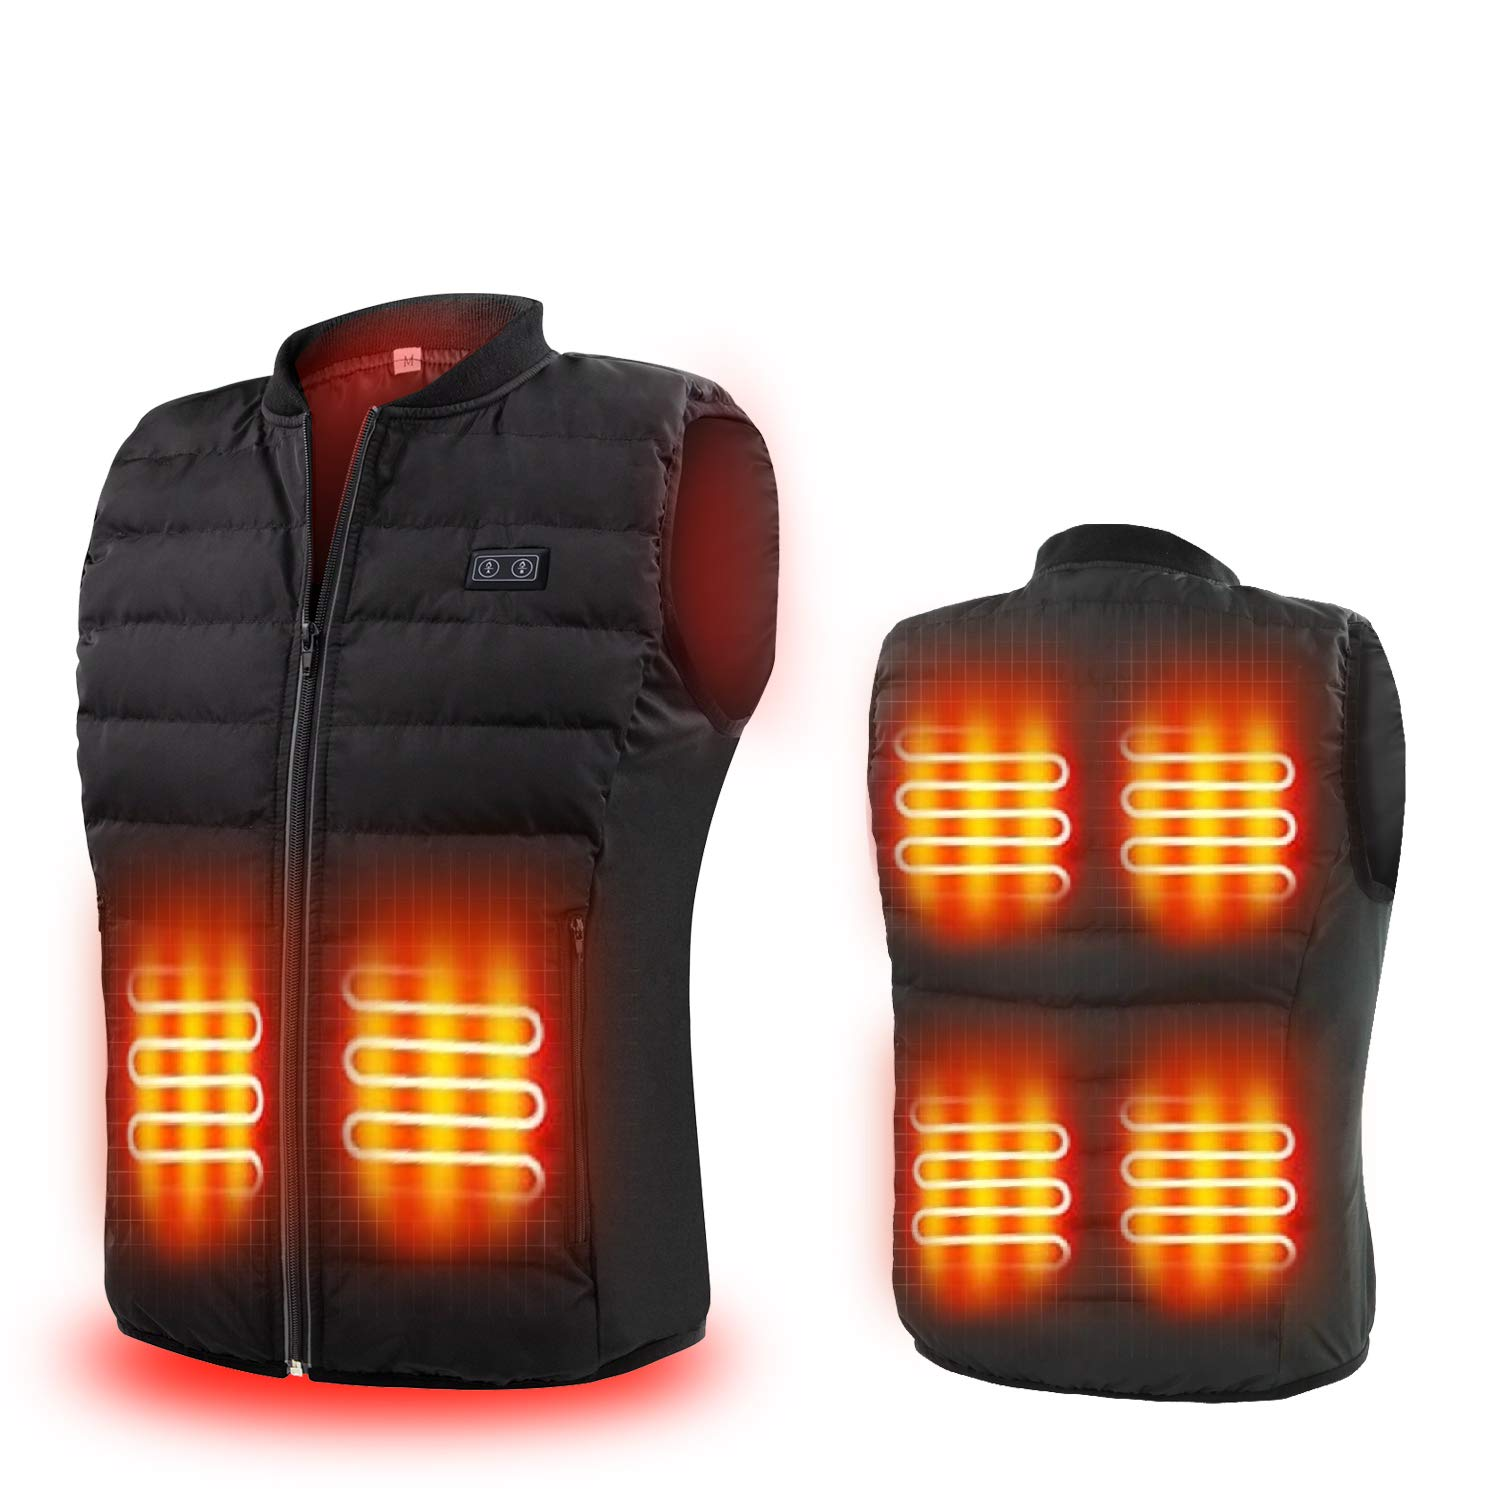 Heated Vest - Lightweight Washable Heating Puffer Jacket 7.4V Rechargeable Battery Pack Electric Charging Warm Waistcoat Clothing for Outdoor Hiking, Hunting, Motorcycle, Camping for Men&Women